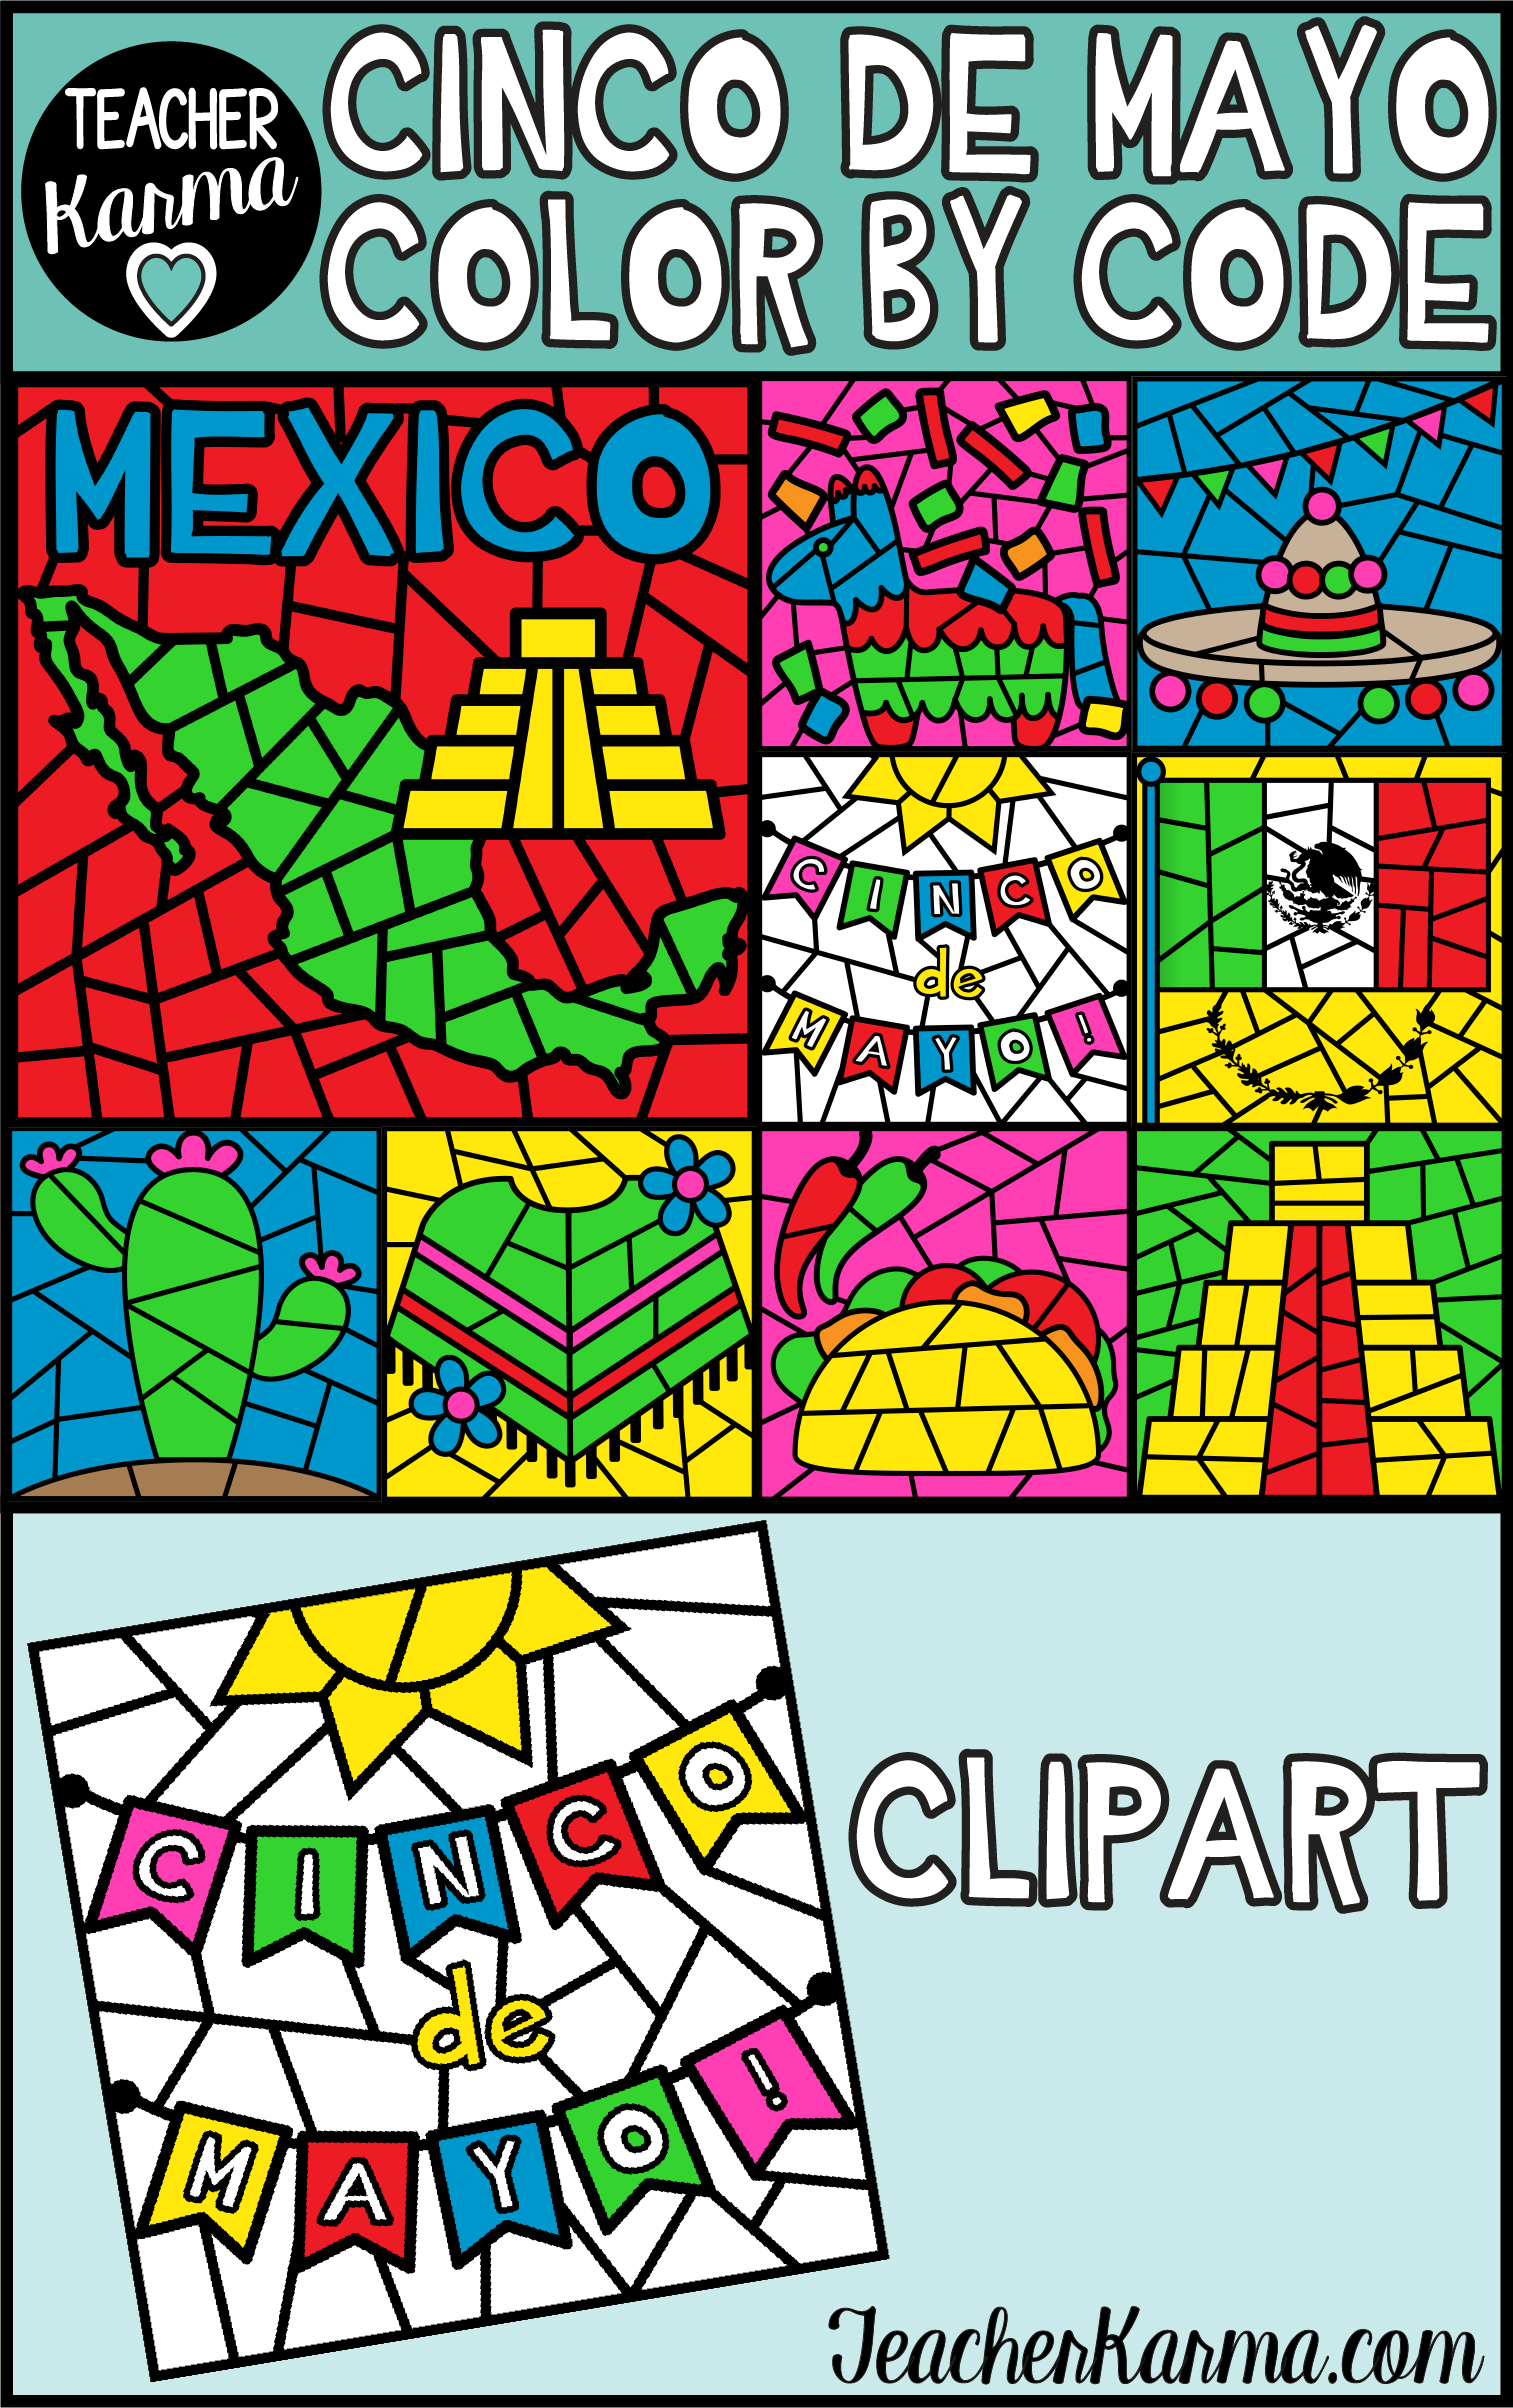 Cinco De Mayo Color By Code Clipart With Images